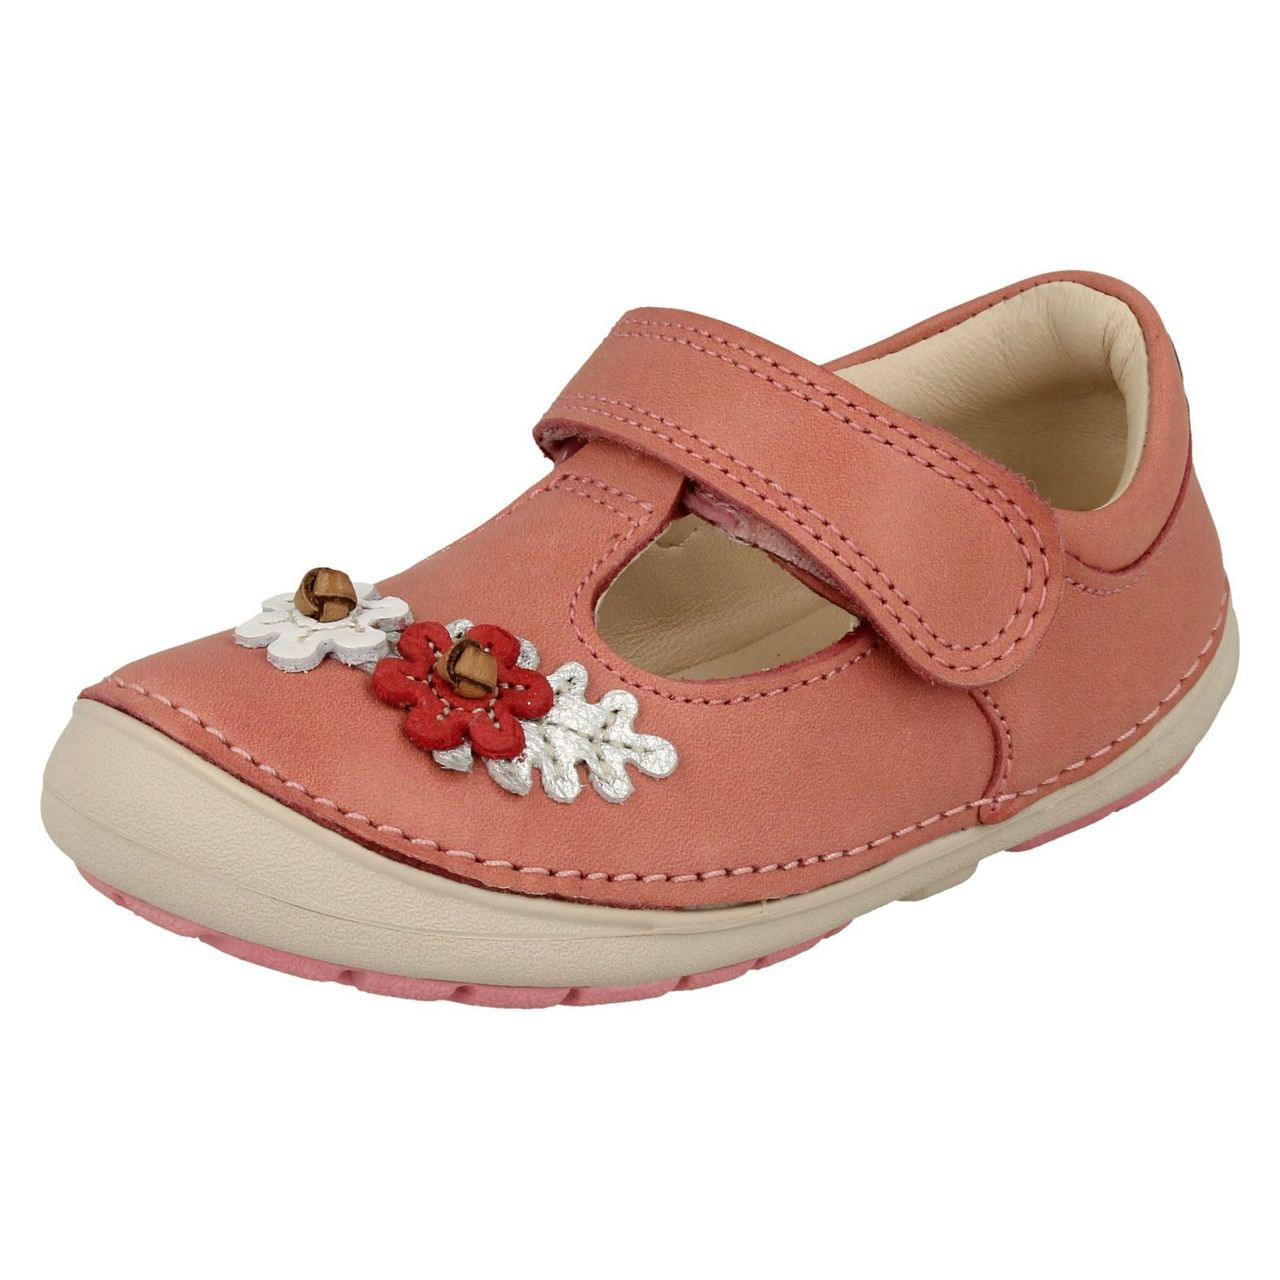 Girls Clarks First Walking Shoes Softly